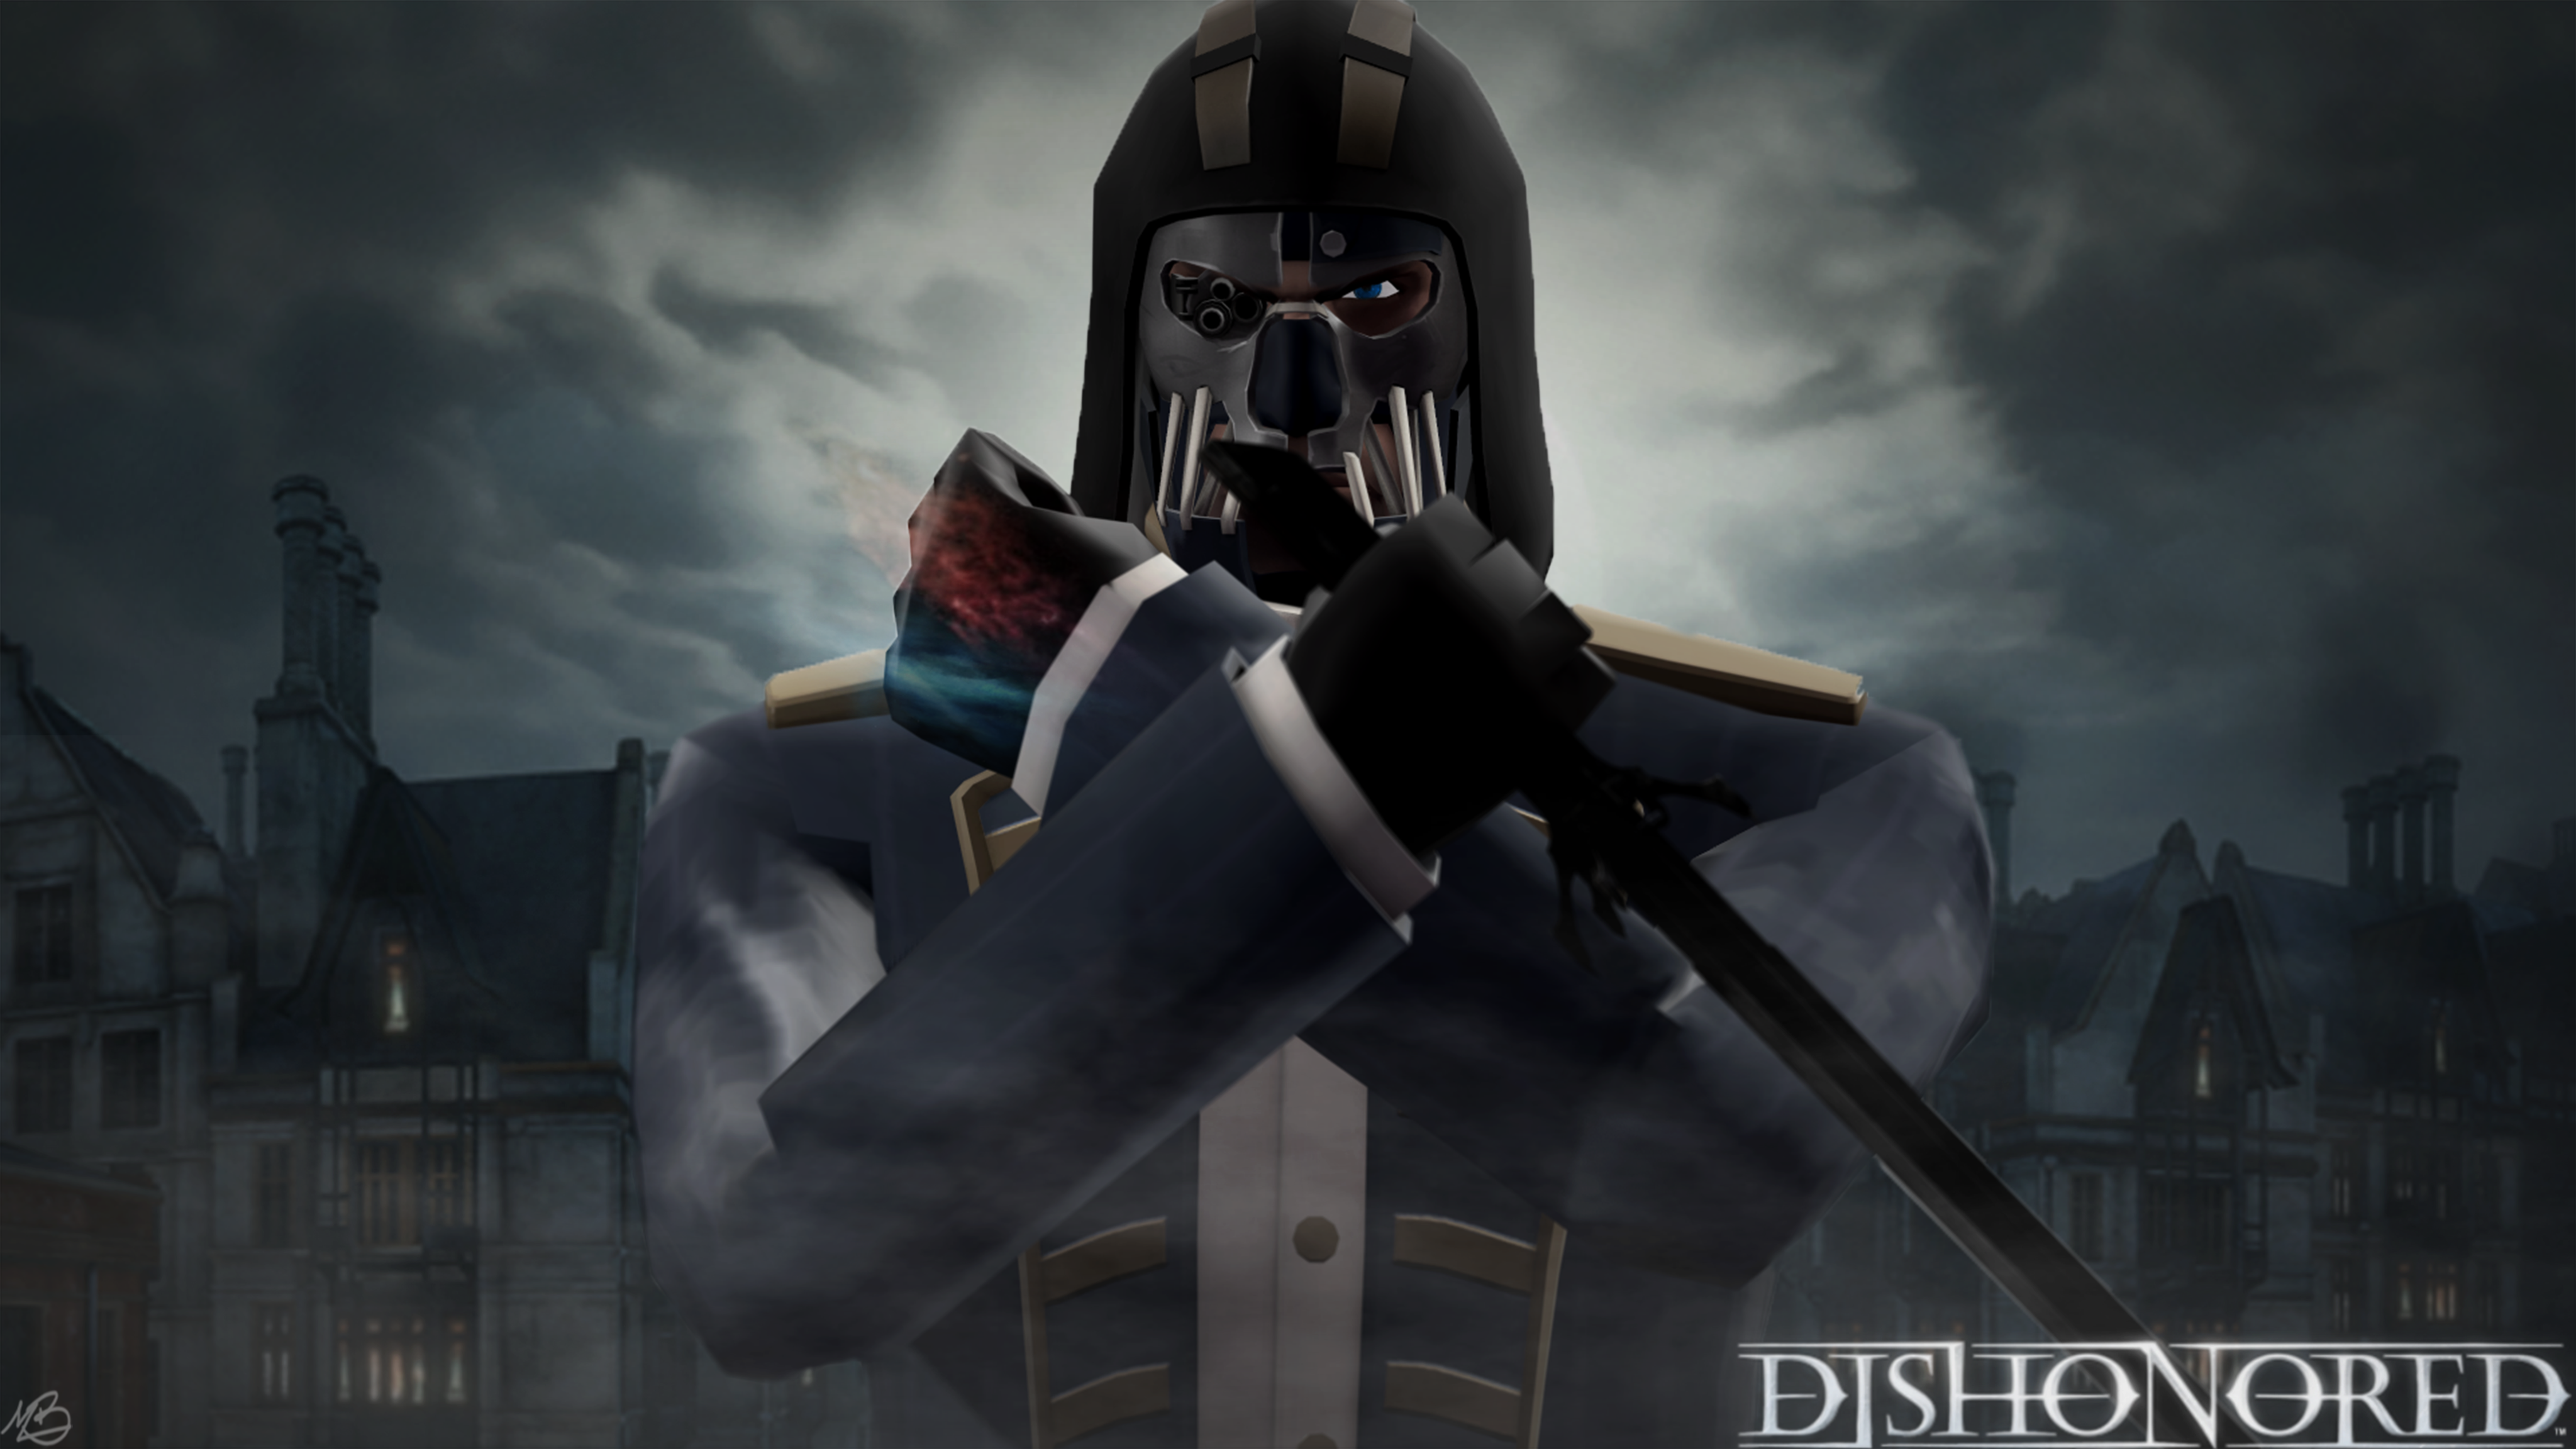 Dishonored Fan Art Corvo Video Games Wallpapers Hd: Dishonored By Monast On DeviantArt